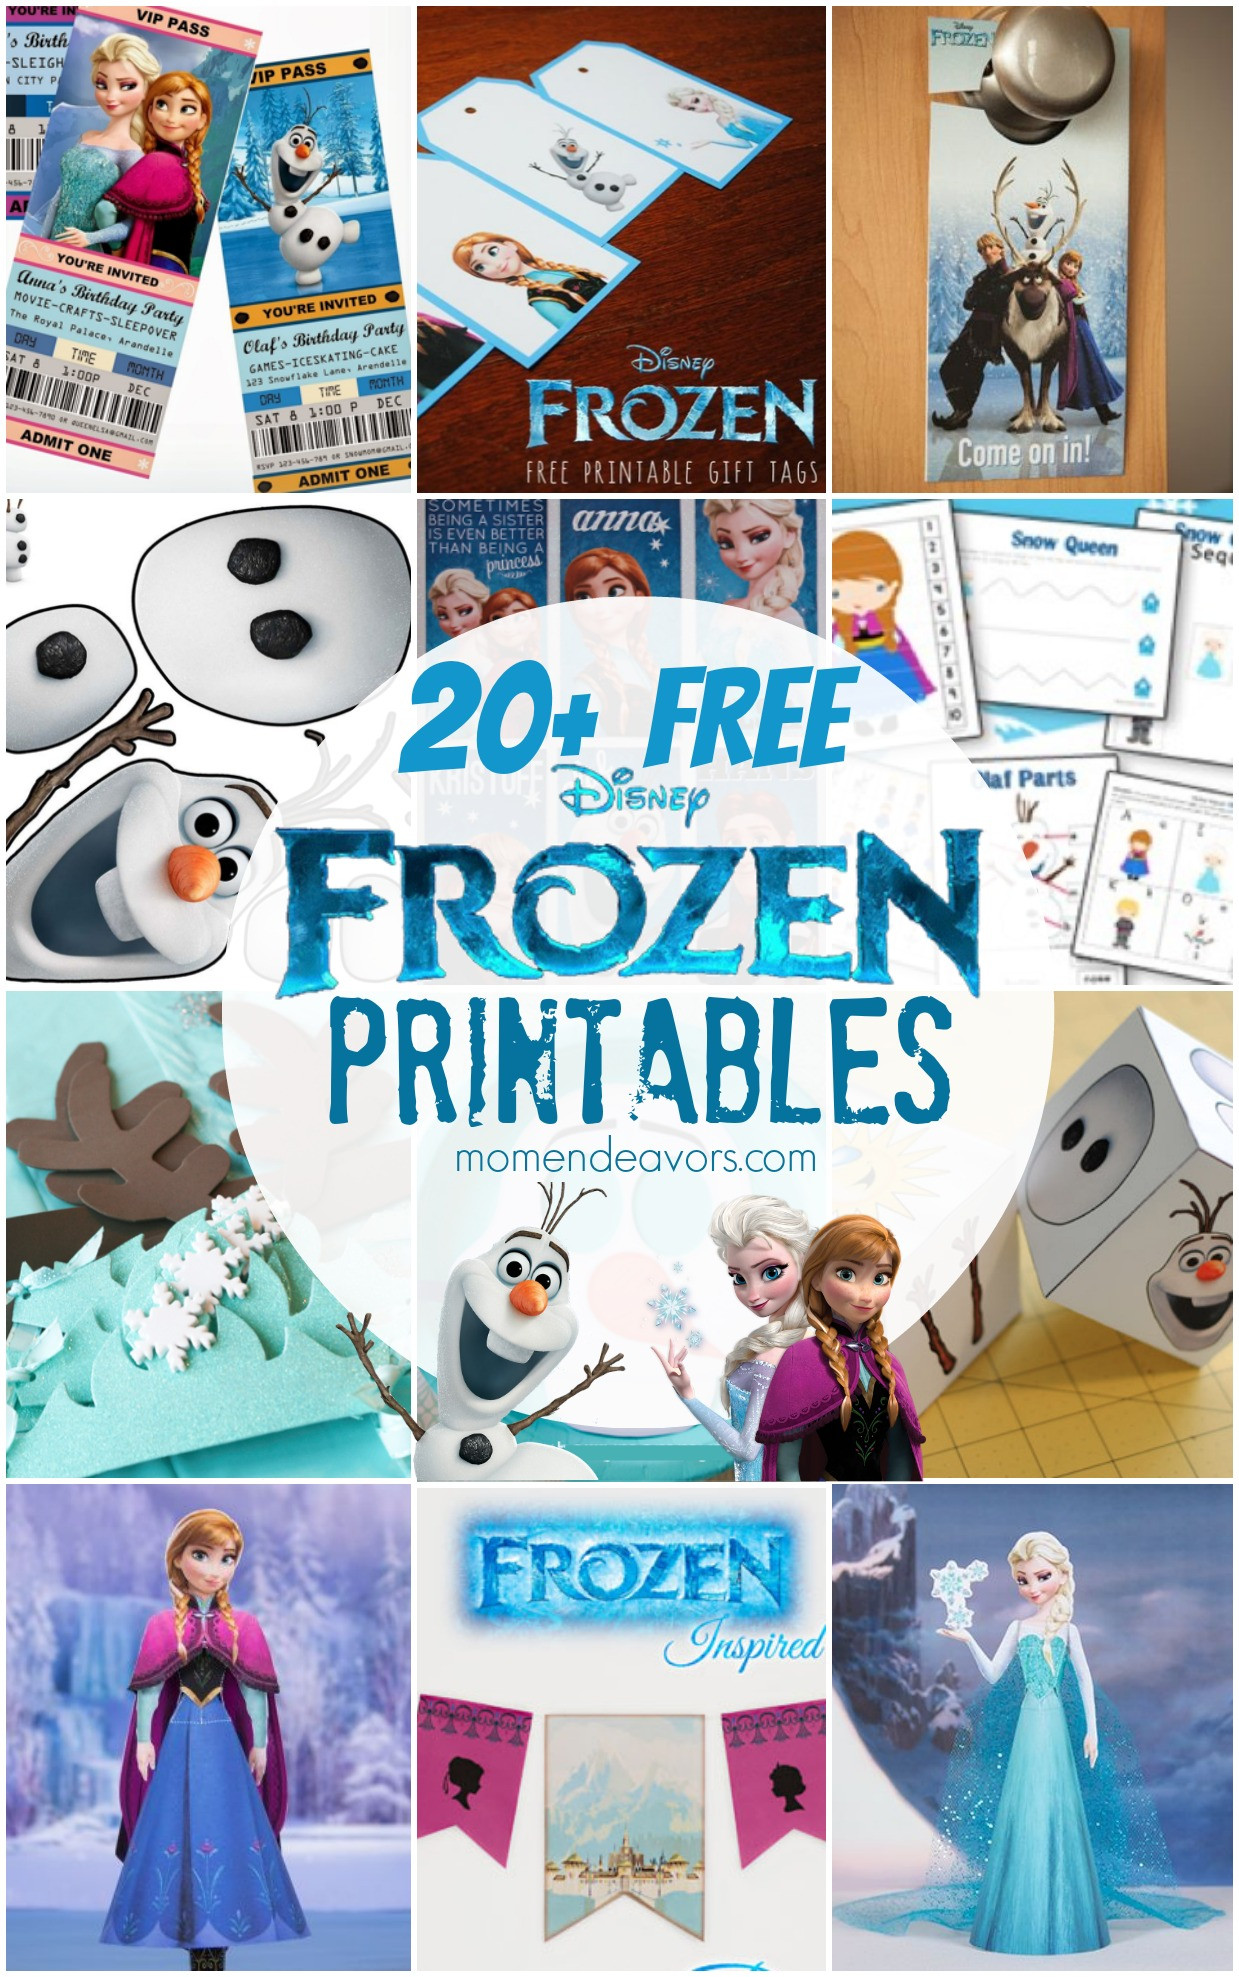 Frozen Free Printable Food Labels 20 Free Disney Frozen Printables Activity Sheets & Party